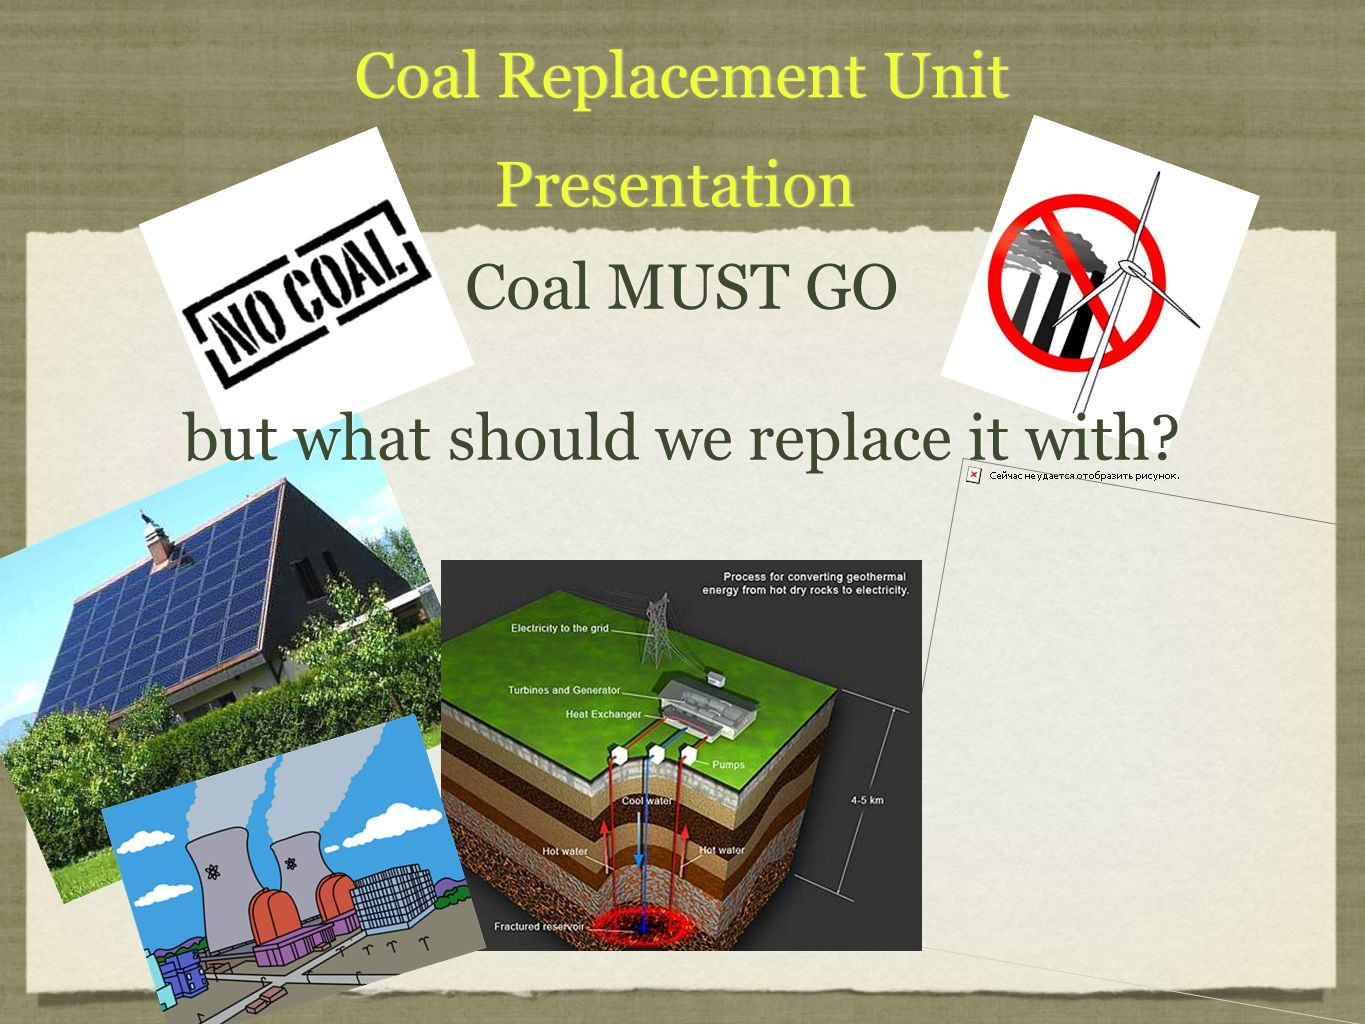 Coal Replacement Unit Presentation Coal Replacement Unit Presentation Coal MUST GO but what should we replace it with.